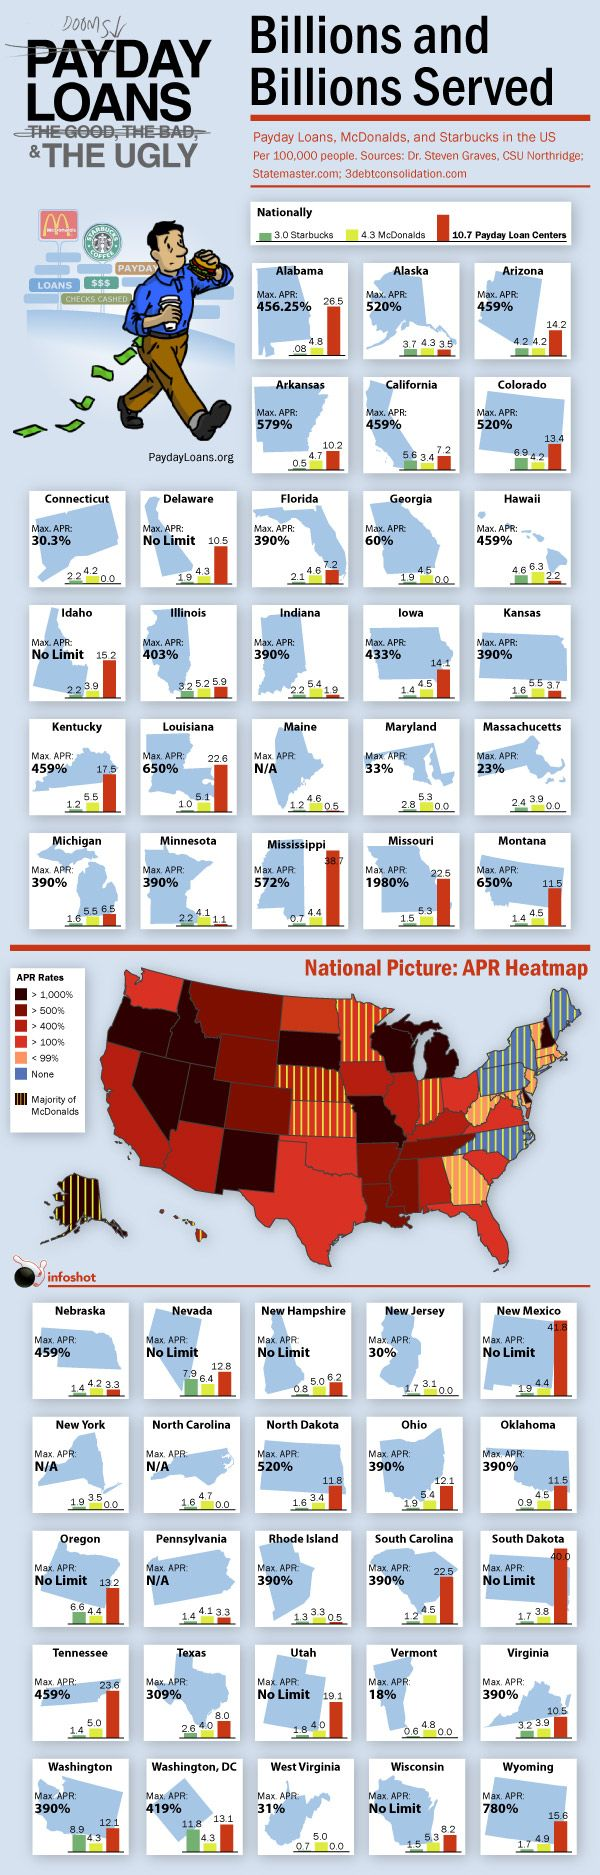 Payday Loans - http://www.coolinfoimages.com/infographics/payday-loans/